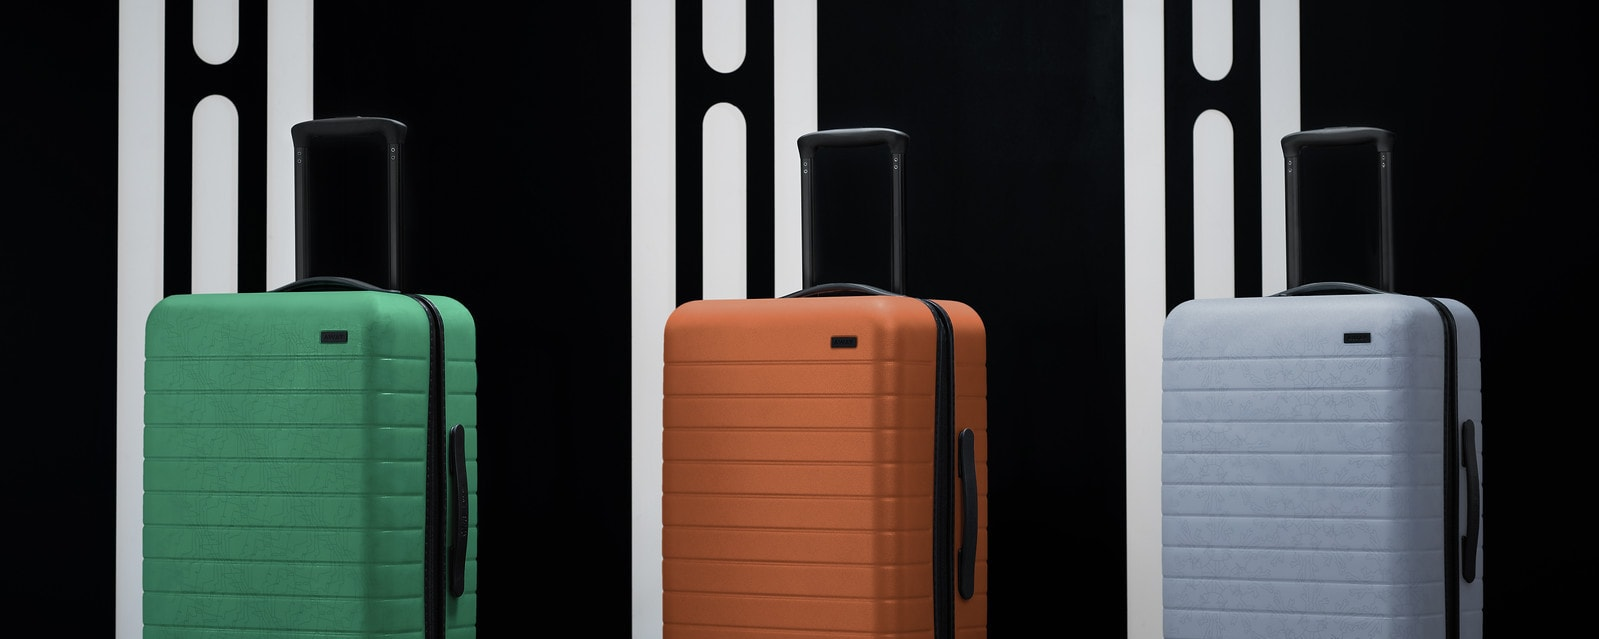 3 Away suitcases inspired by Tatooine, Hoth and Endor from the the Star Wars collection